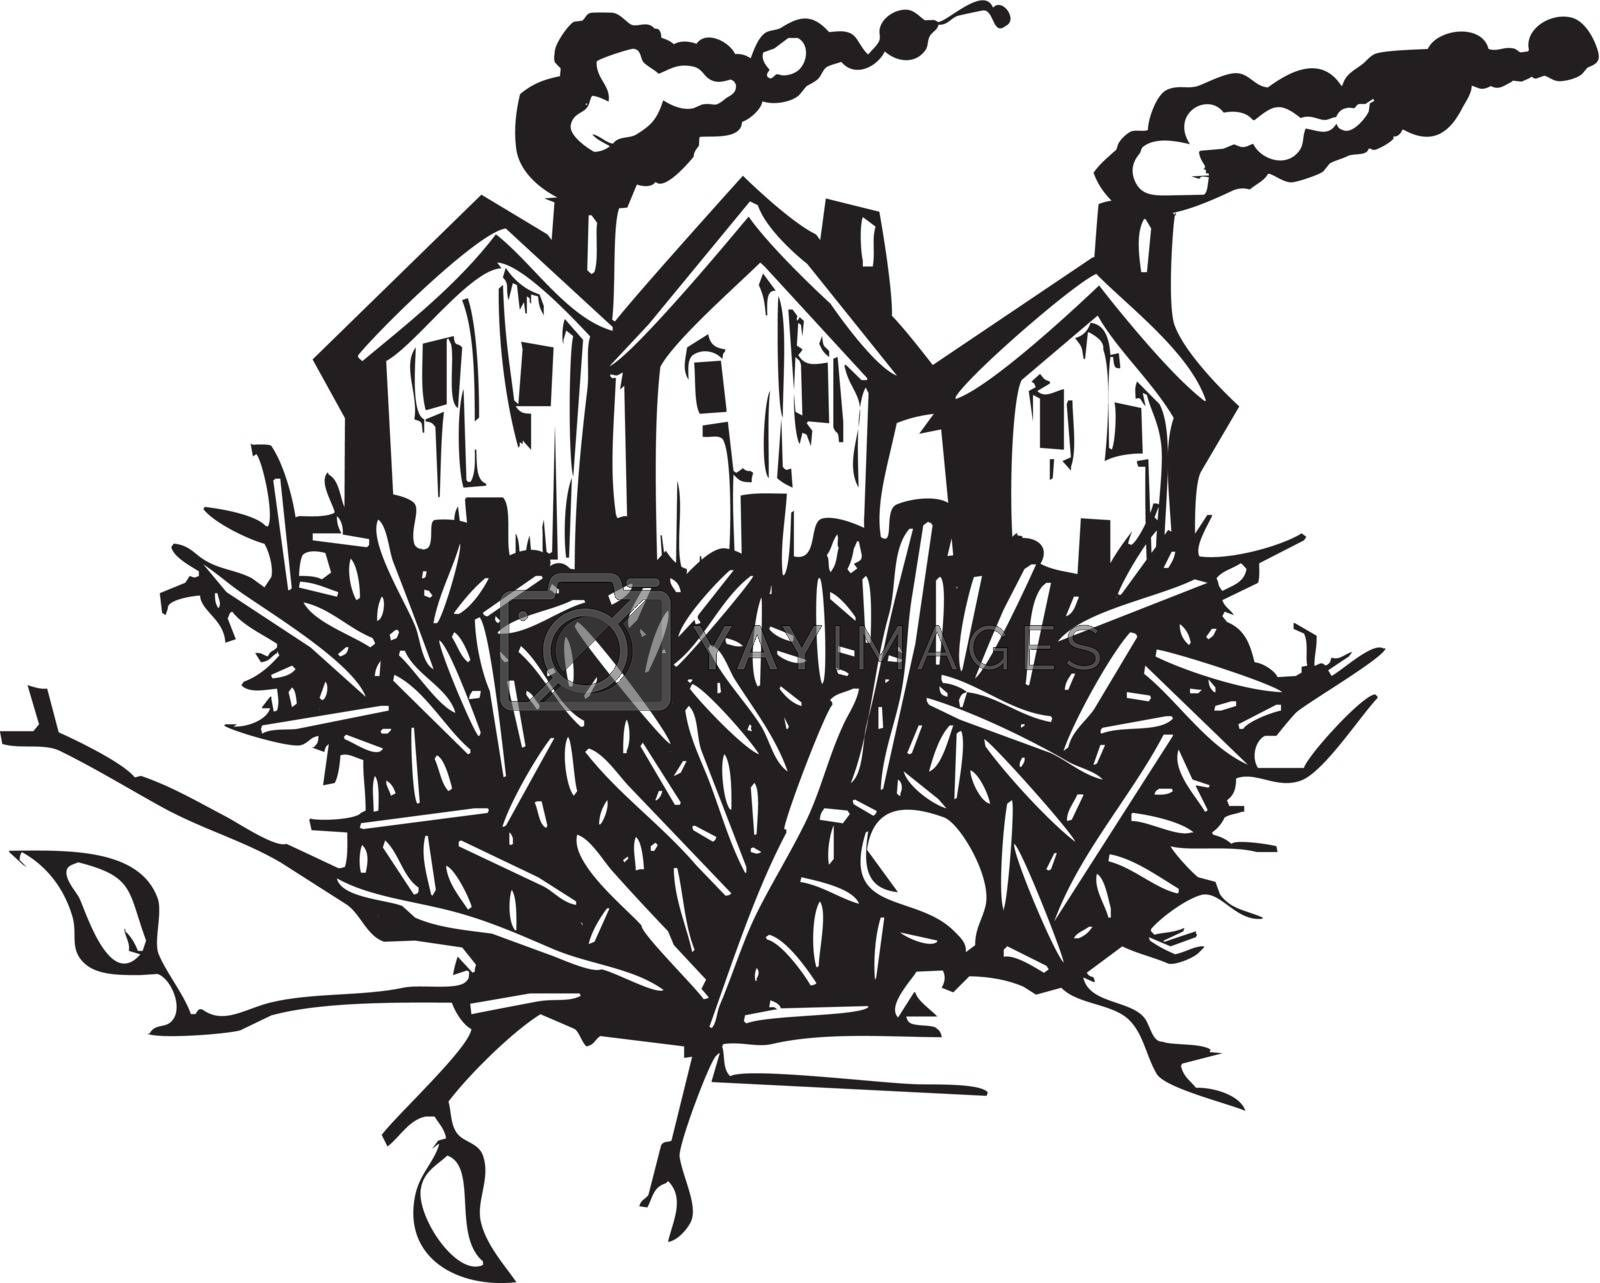 Woodcut style of a number of houses sitting in a birds nest.